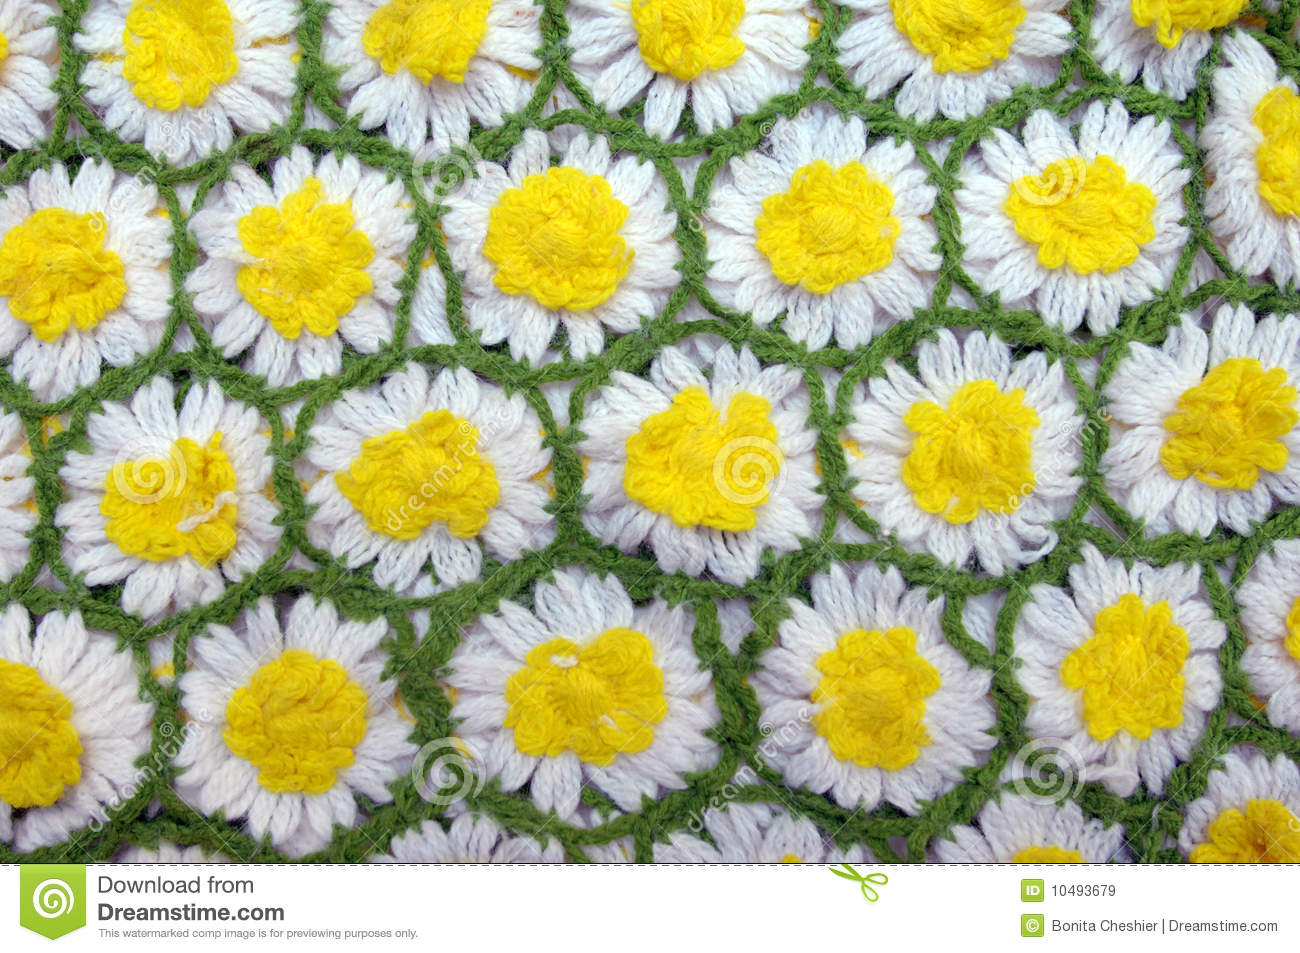 Daisy chains stock image image of white background 10493679 hand knitted daisy aghan has flowers linked by bright green yarn background image izmirmasajfo